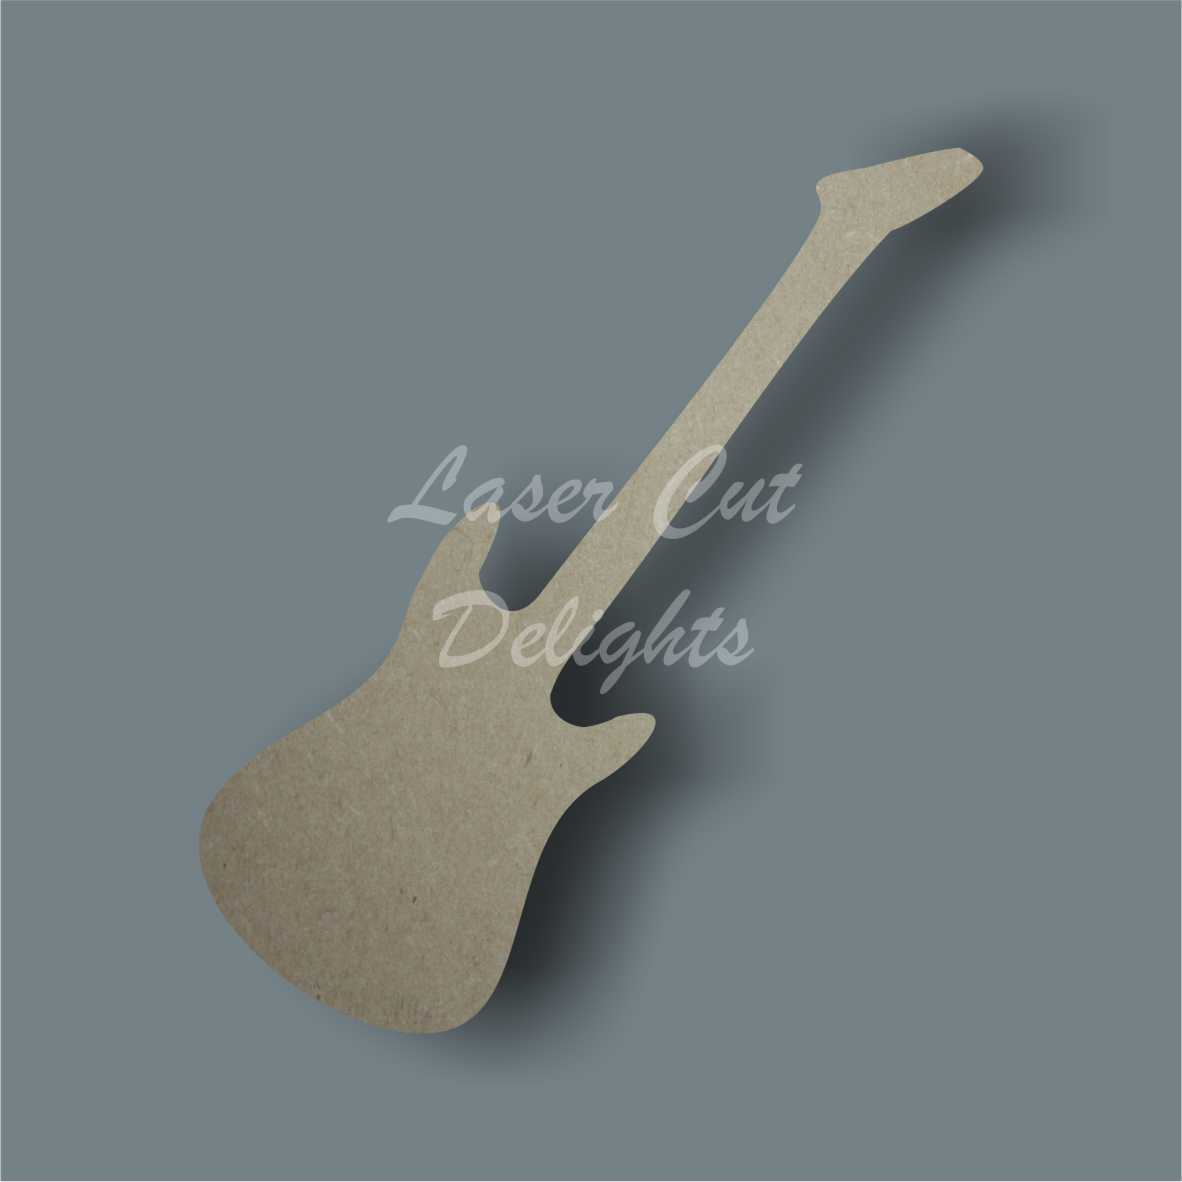 Guitar 3mm 10cm / Laser Cut Delights